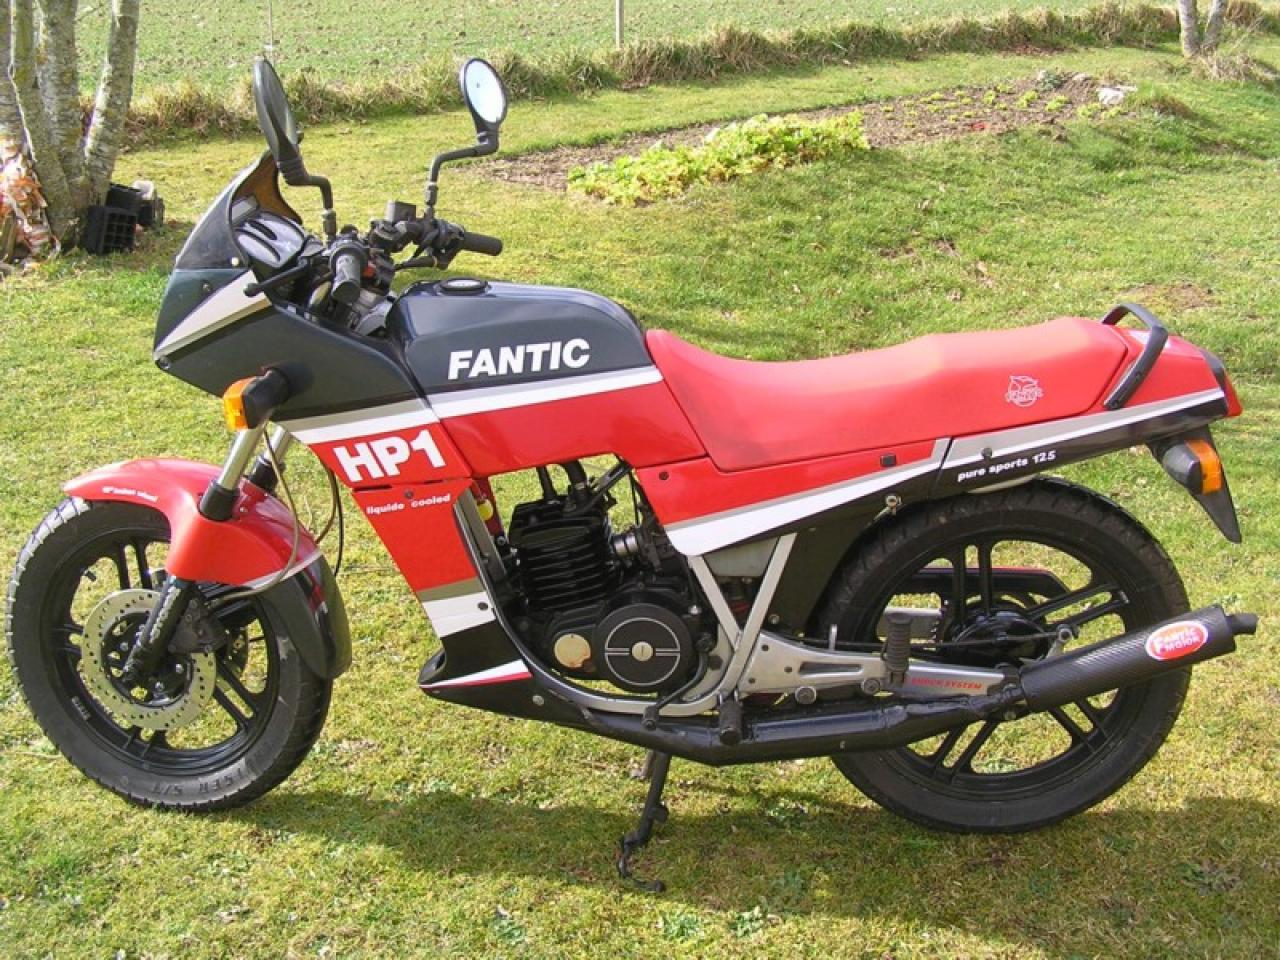 Fantic 125 Sport HP 1 (reduced effect) 1988 images #146197